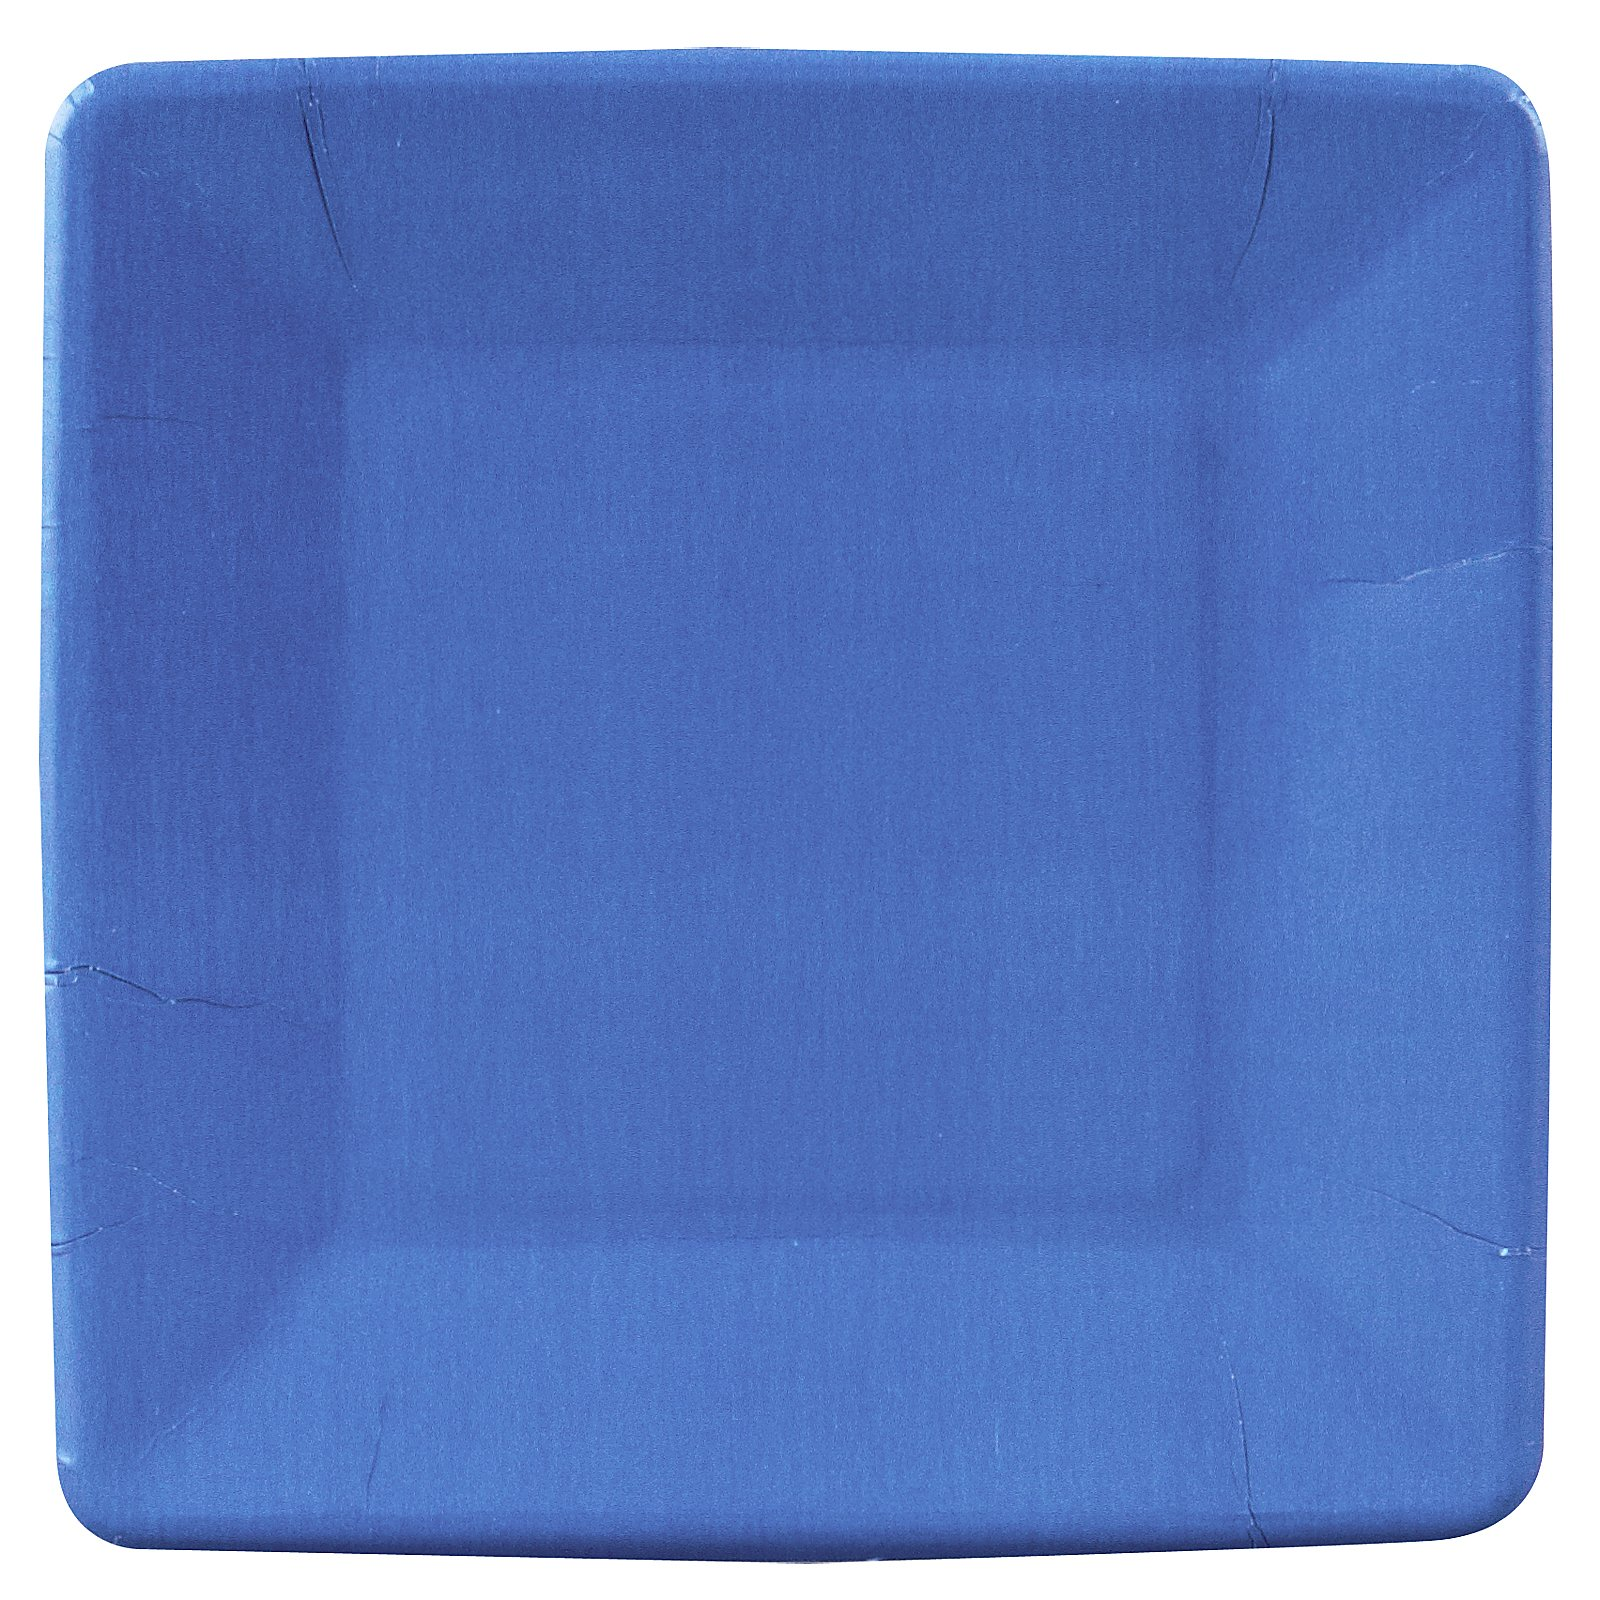 True Blue (Blue) Square Dessert Plates (18 count)